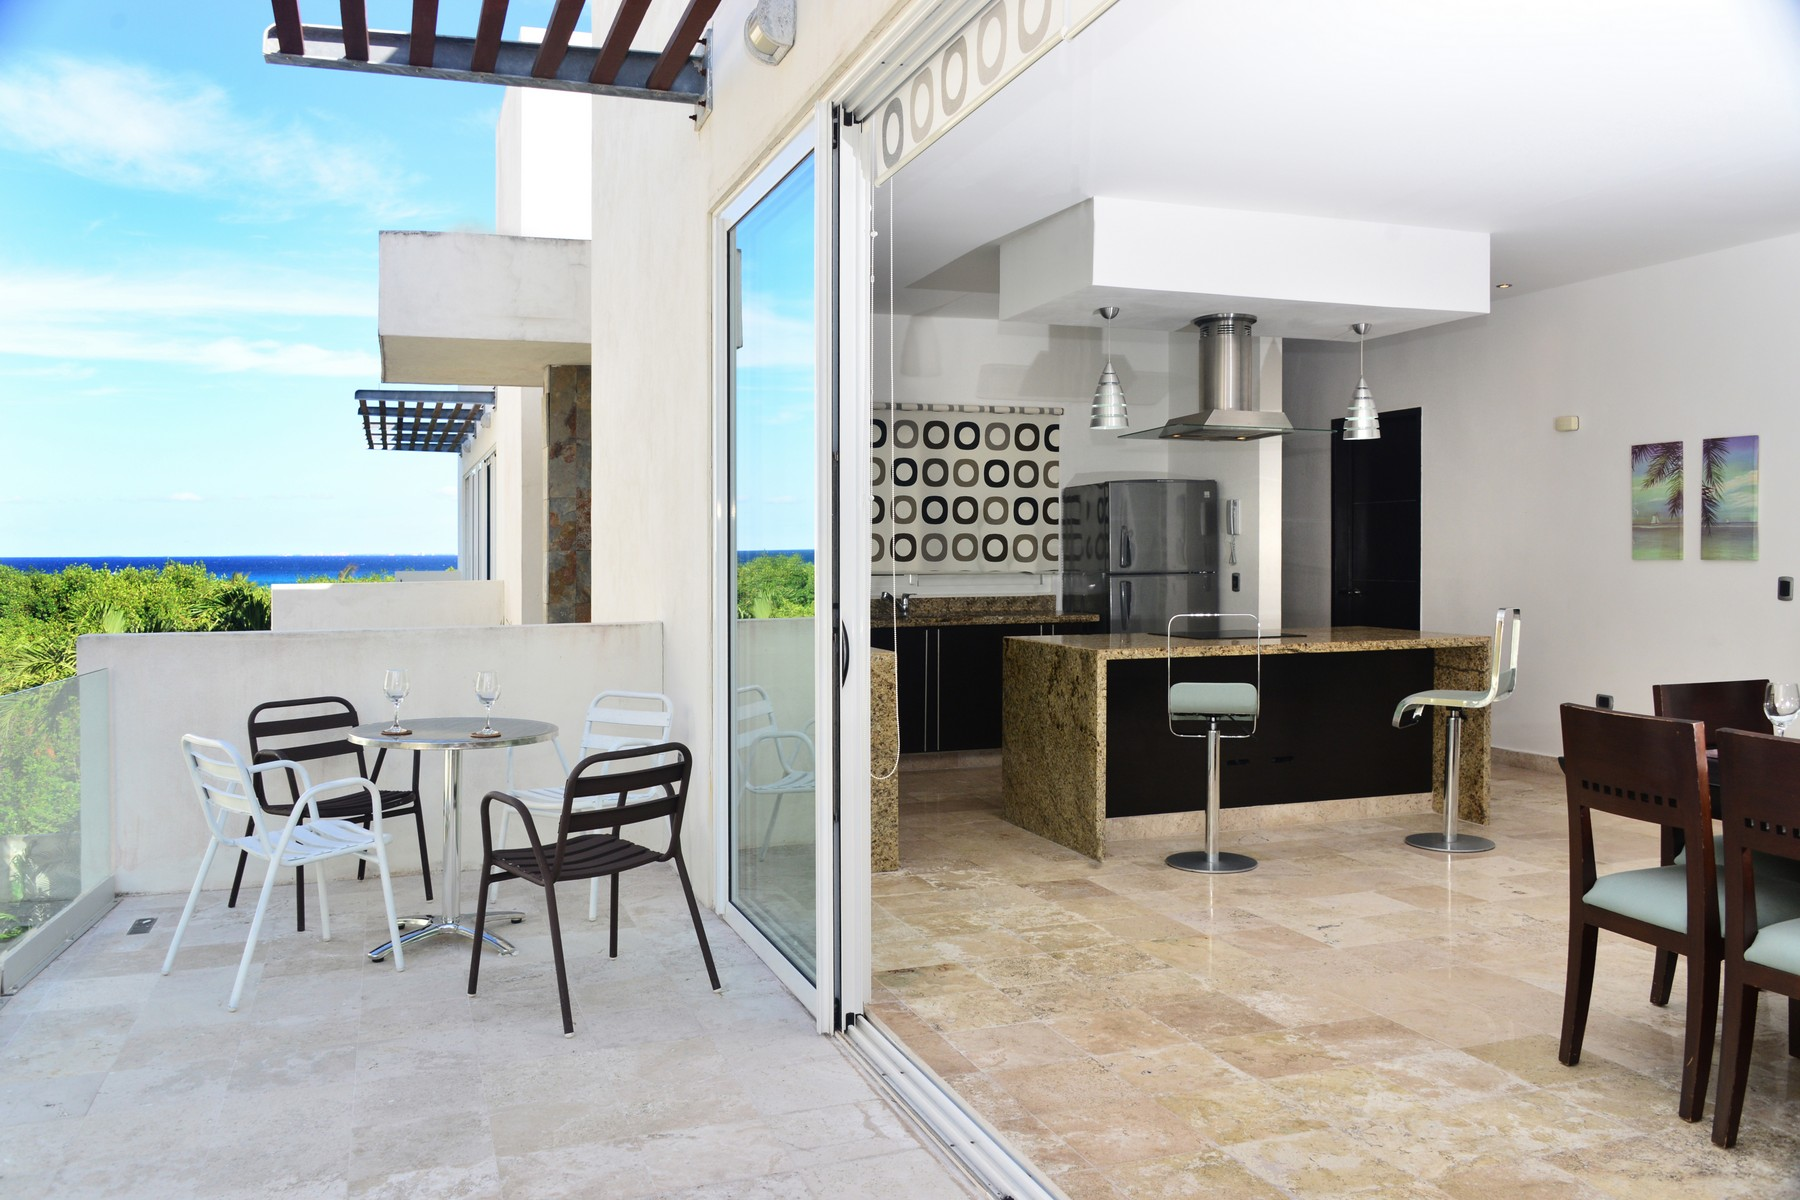 Single Family Home for Sale at EXQUISITE DOWNTOWN PENTHOUSE Downtown Penthouse Mamitas Village Avenida Cozumel Playa Del Carmen, Quintana Roo 77710 Mexico